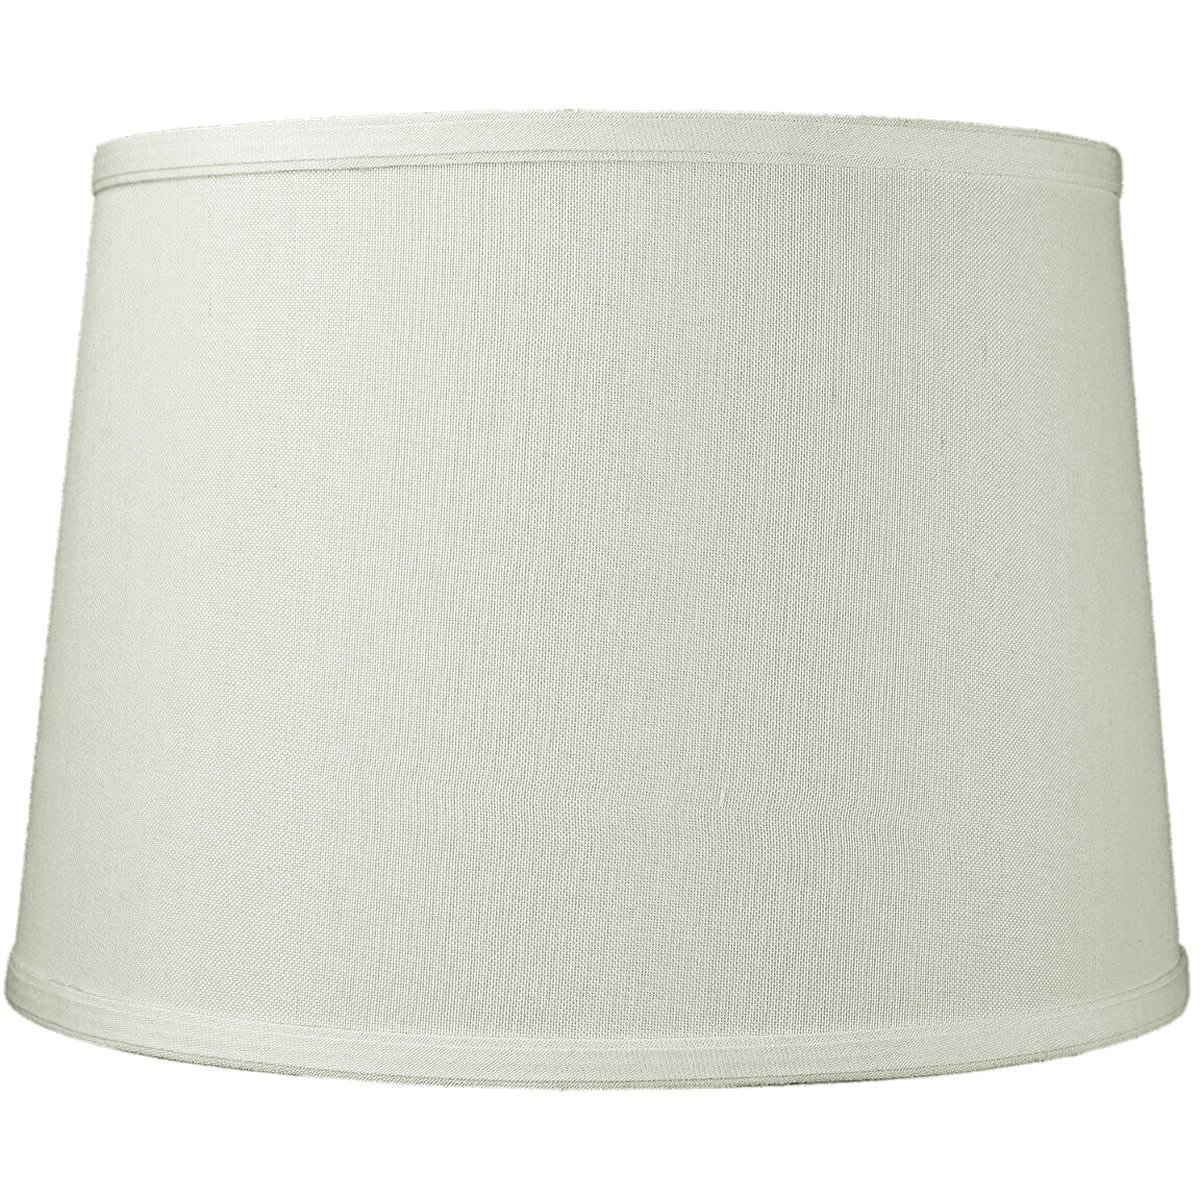 12x14x10 Light Oatmeal Linen Drum Lampshade with Brass Spider fitter By Home Concept - Perfect for table and Desk lamps - Medium, Off-white